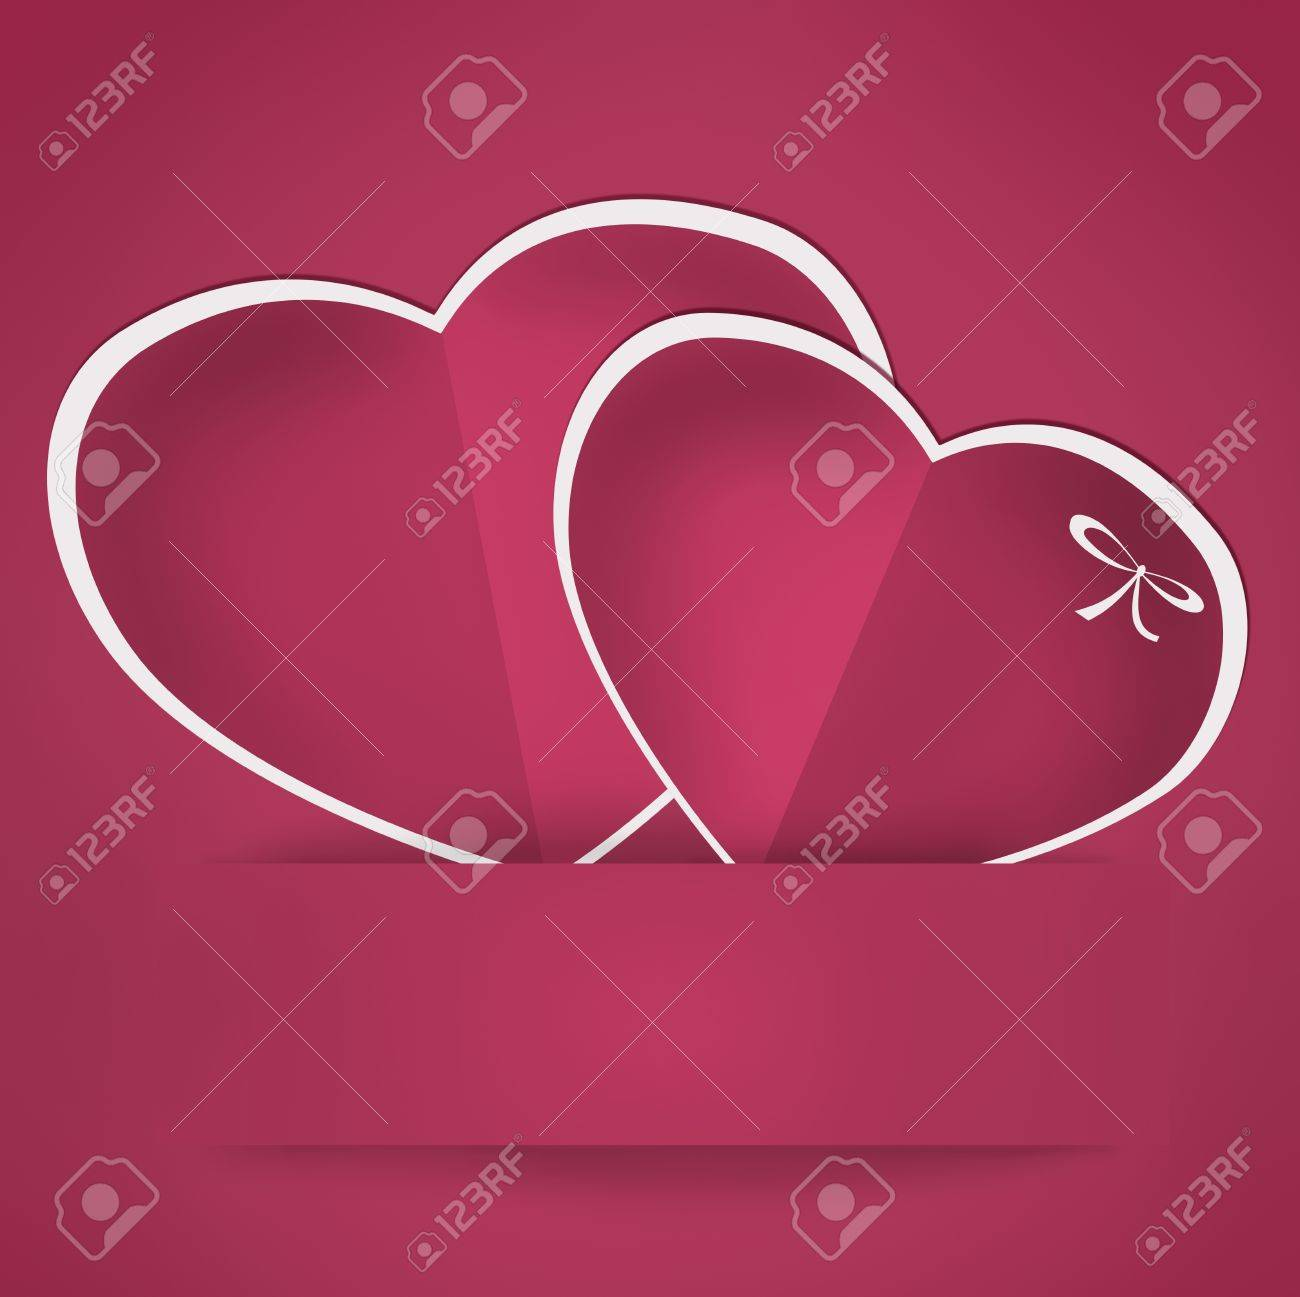 Hearts from paper valentine card with bow illustration  Vintage style Stock Photo - 16913411